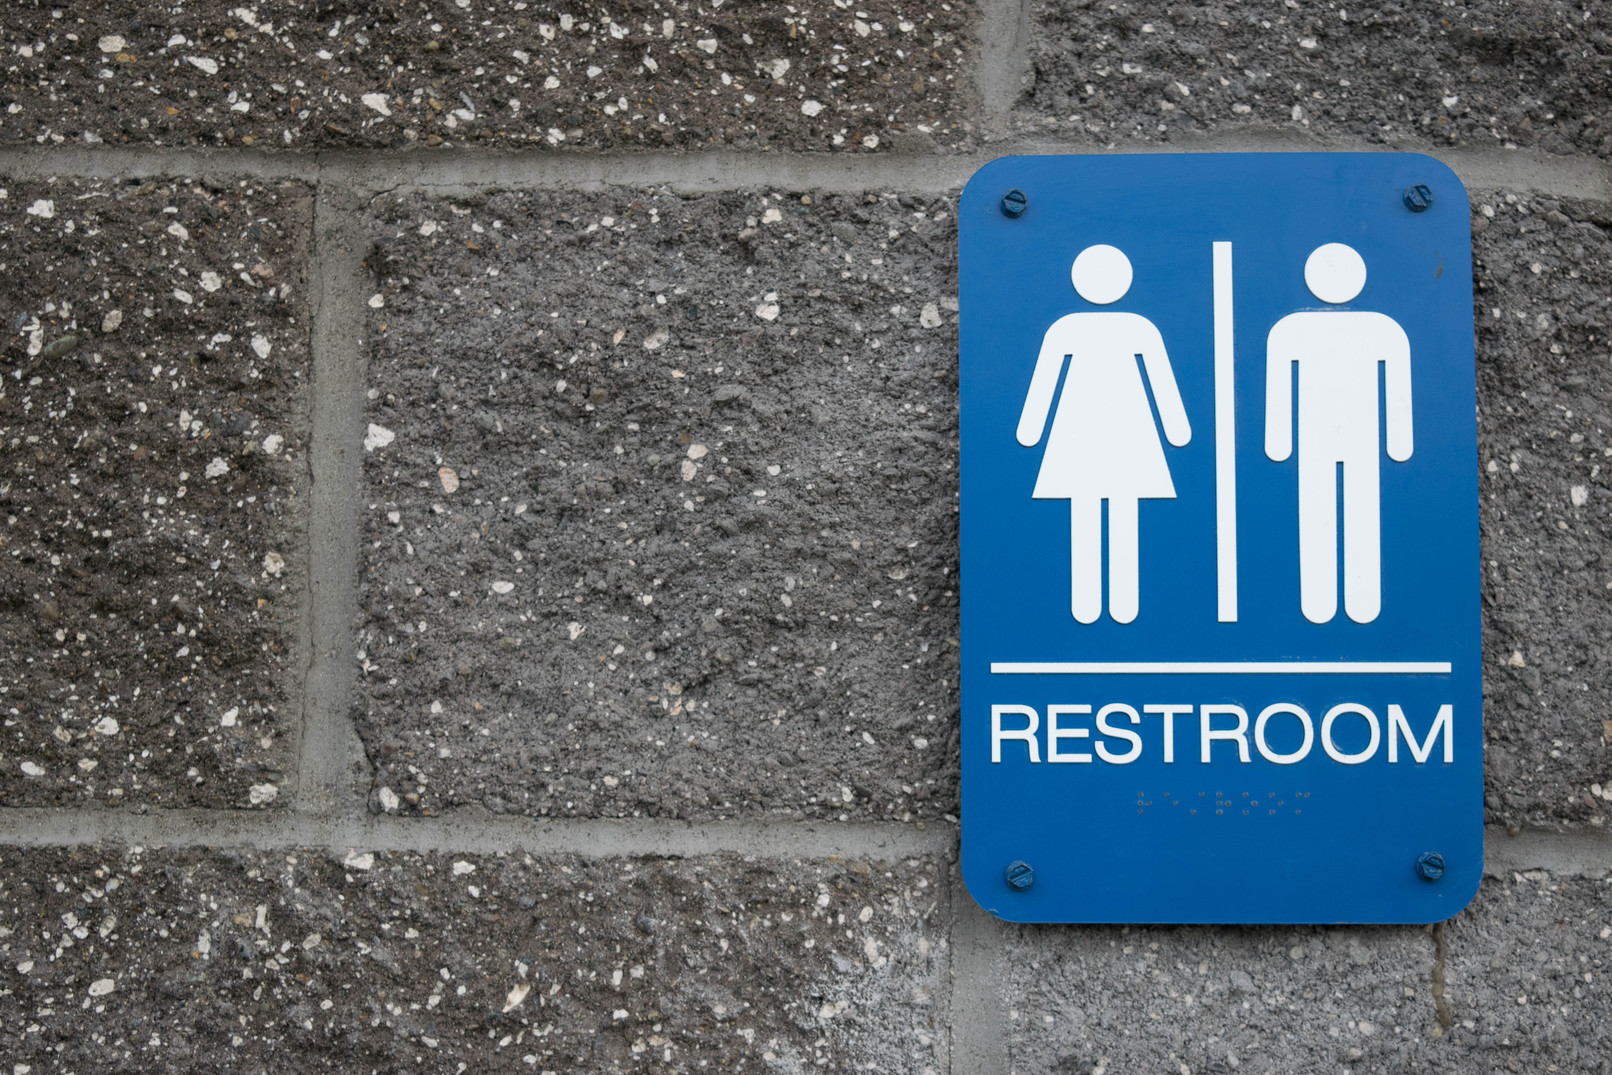 Third Circuit Issues Opinion in School Transgender-Bathroom Case